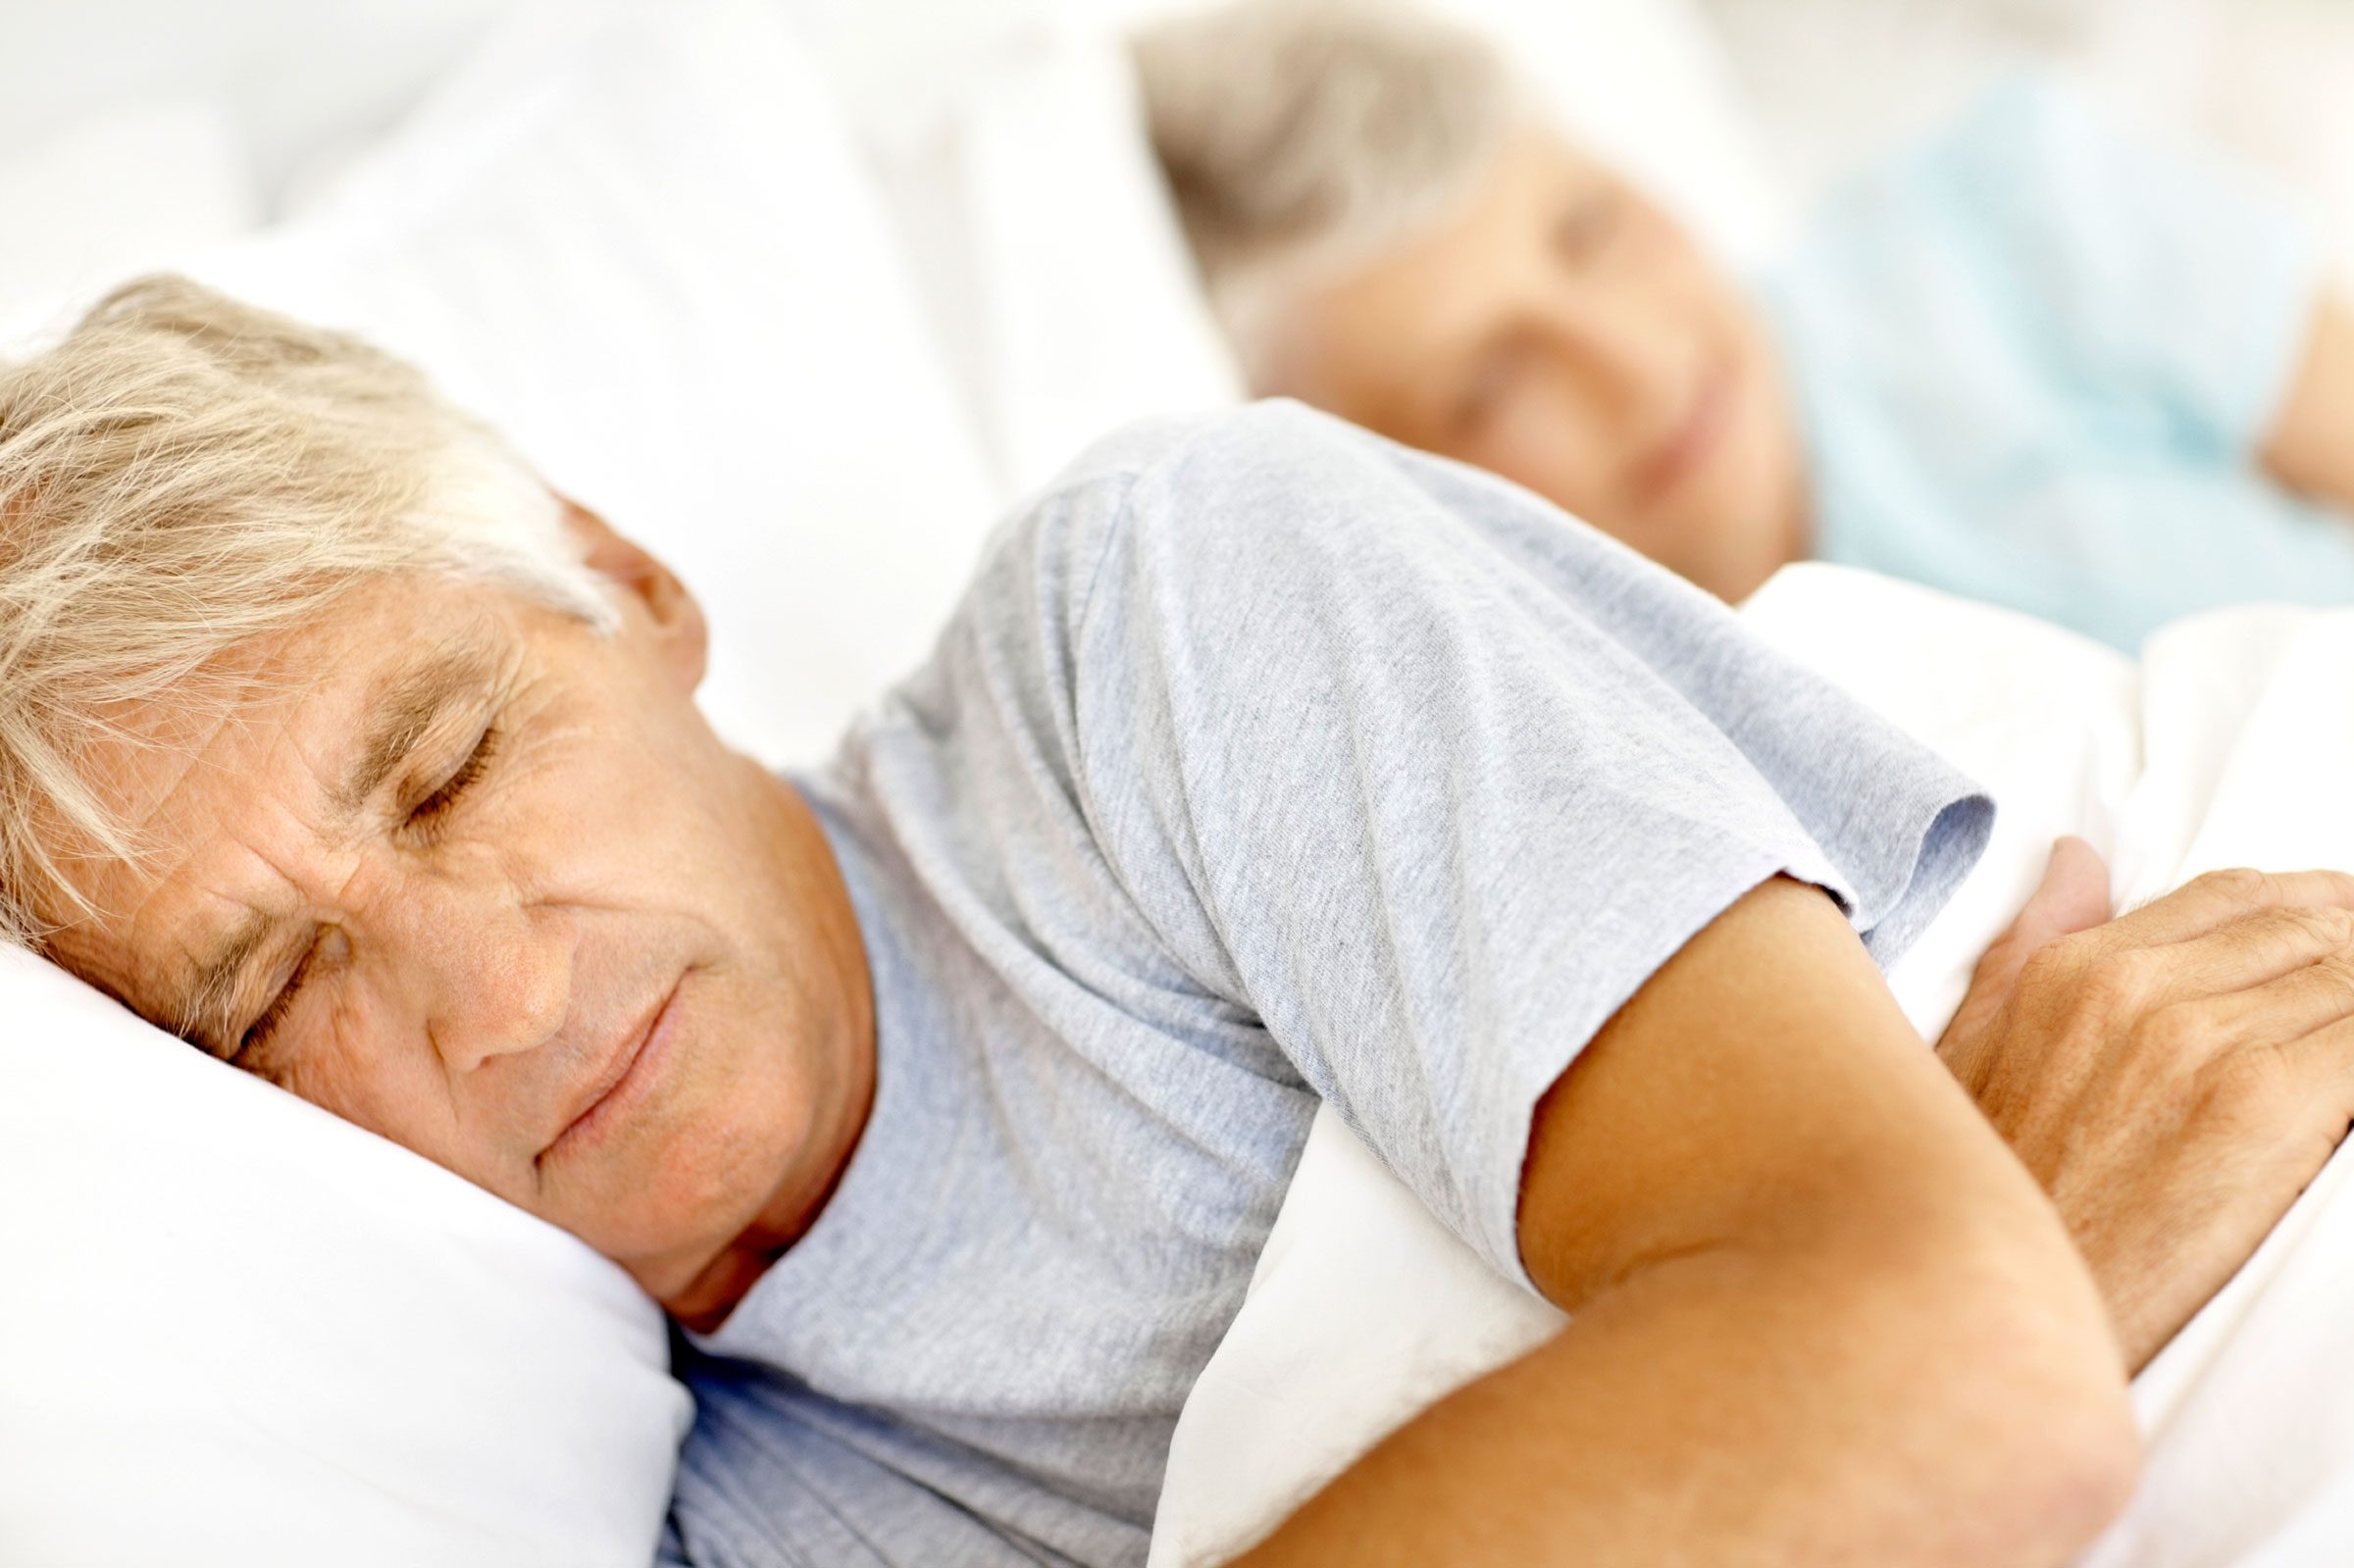 Myth: Older people need less sleep than younger people